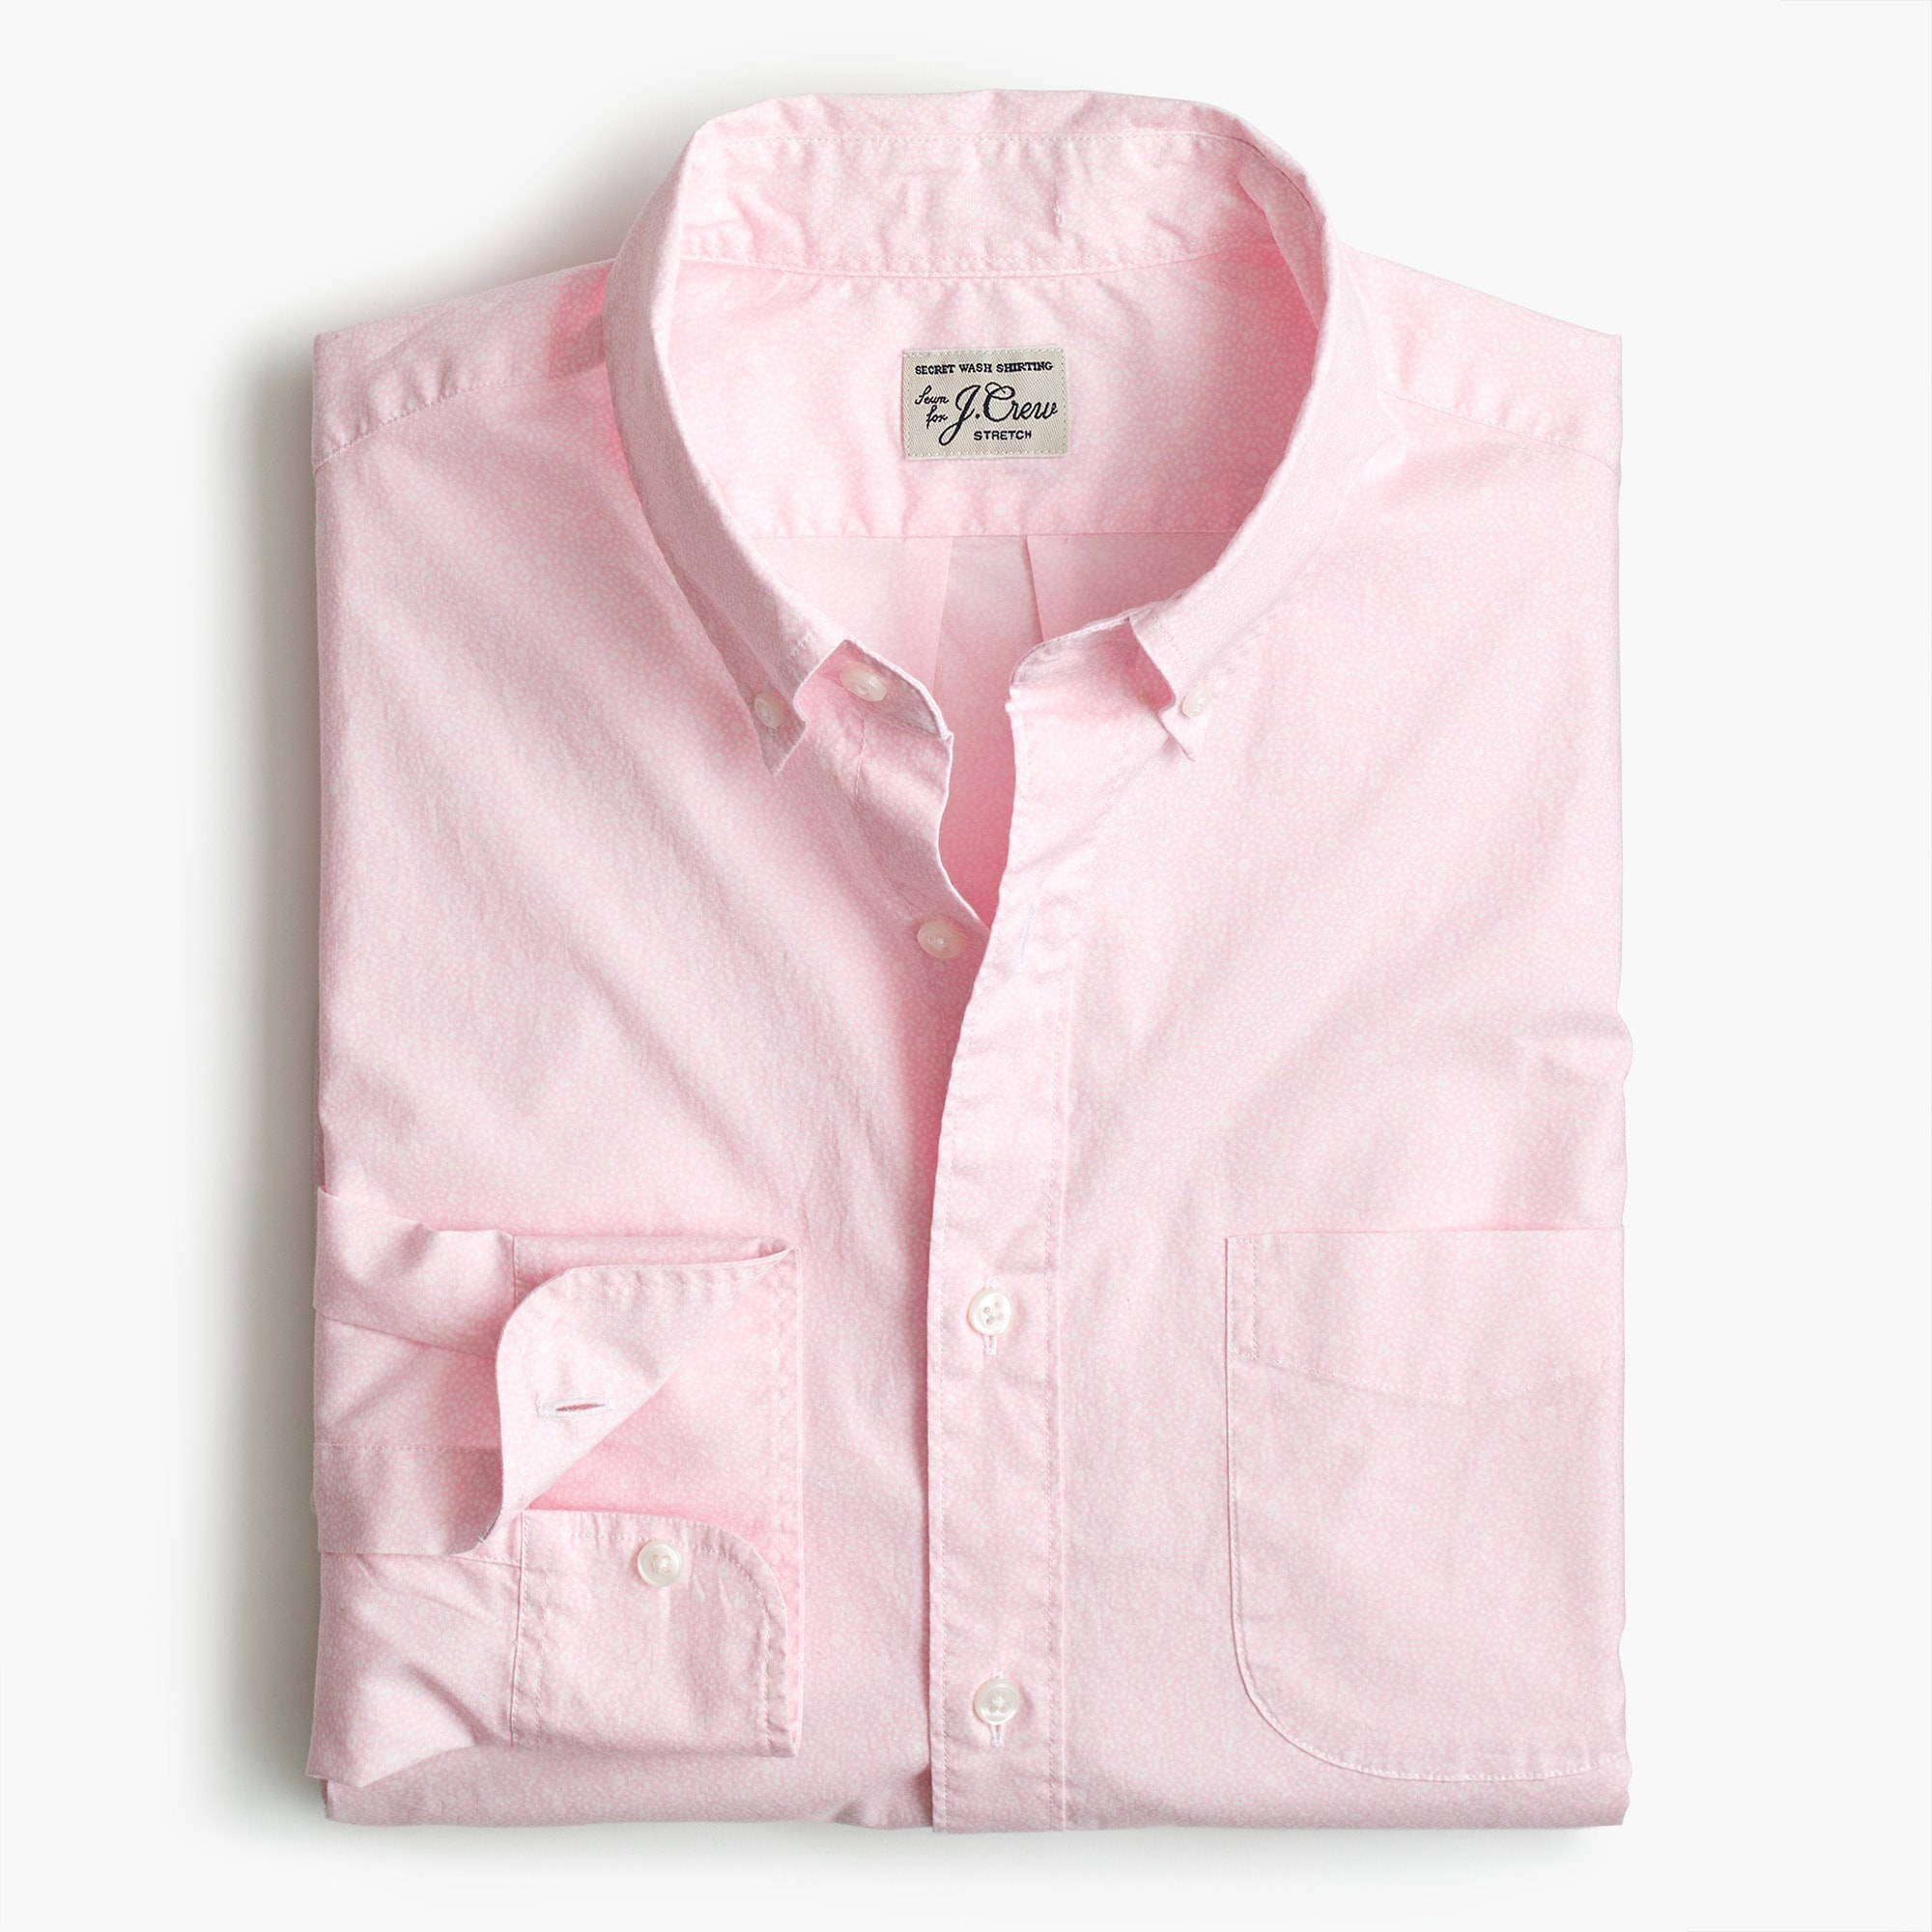 mens Stretch Secret Wash shirt in speckled pink